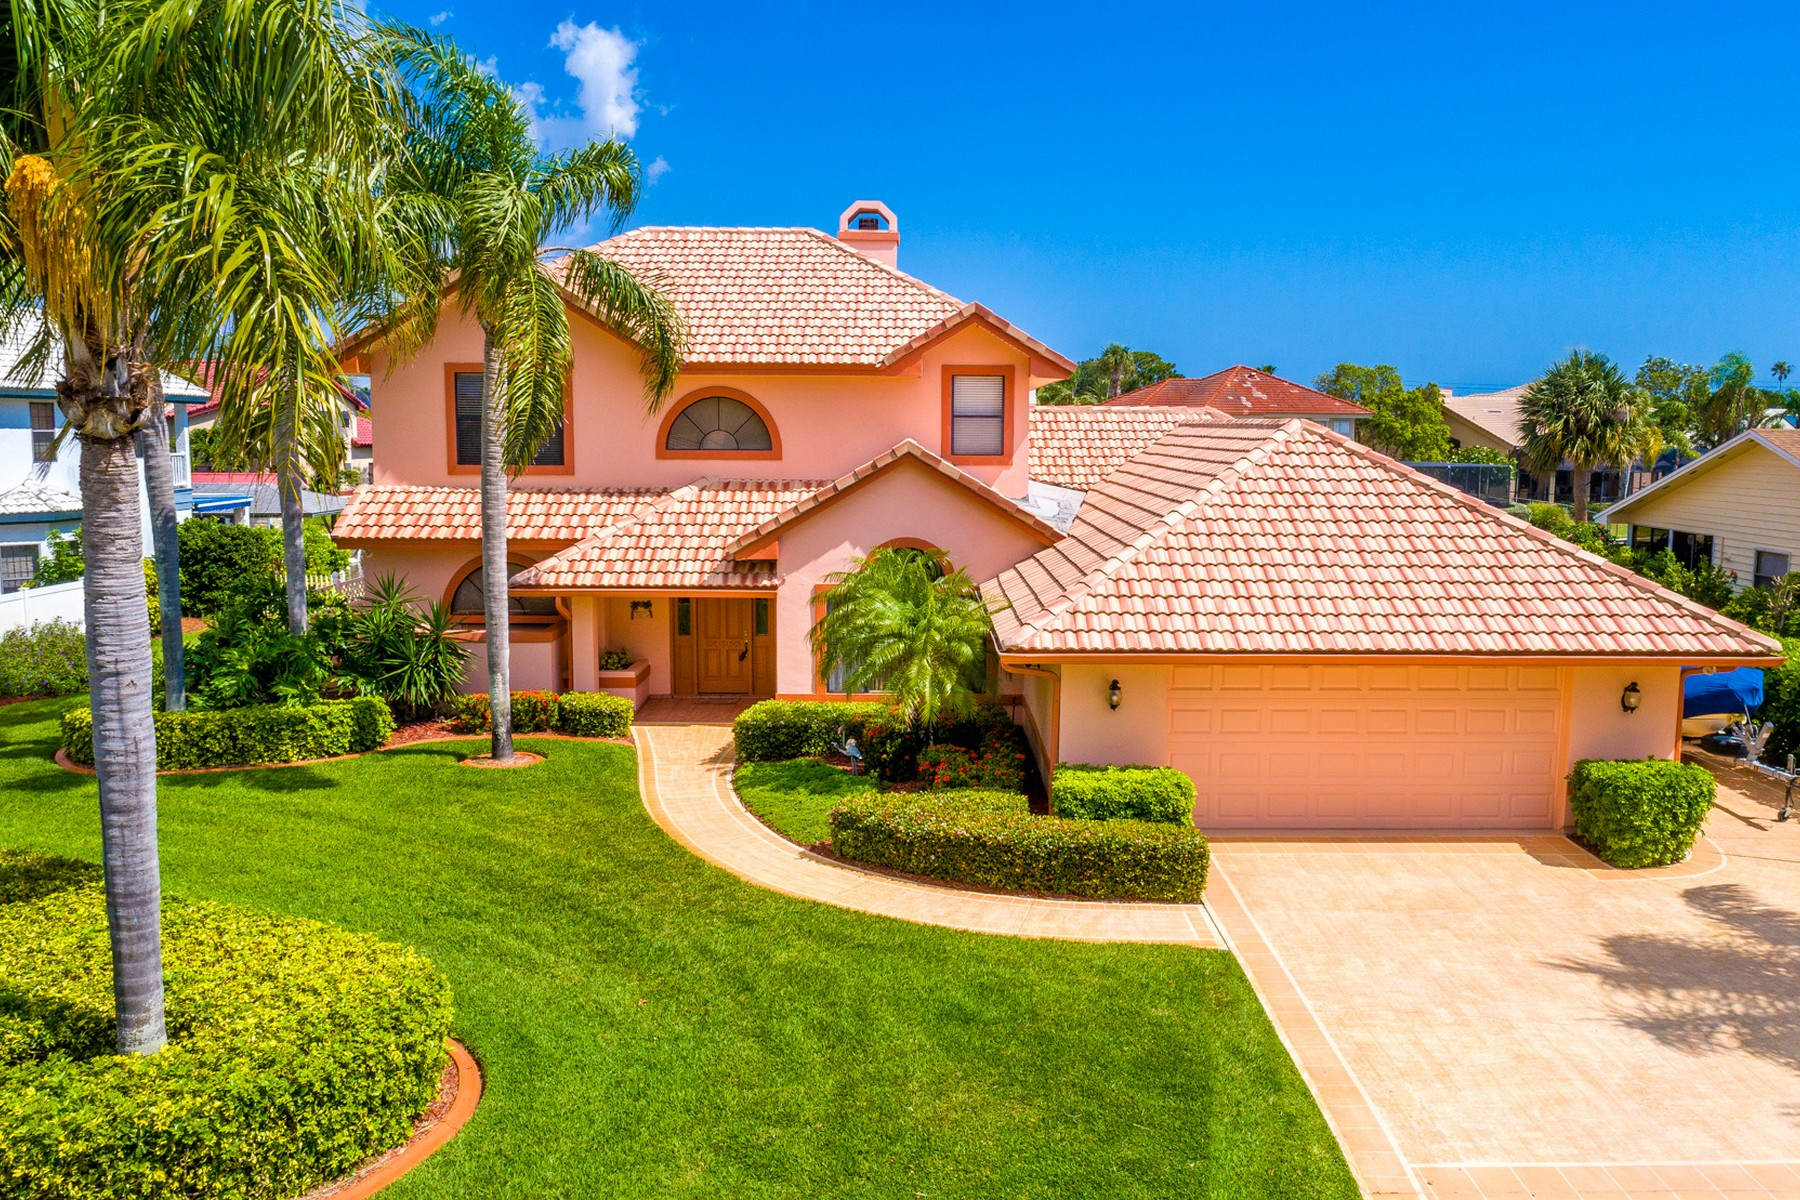 Single Family Home for Sale at 408 Anchor Key Melbourne Beach, Florida 32951 United States